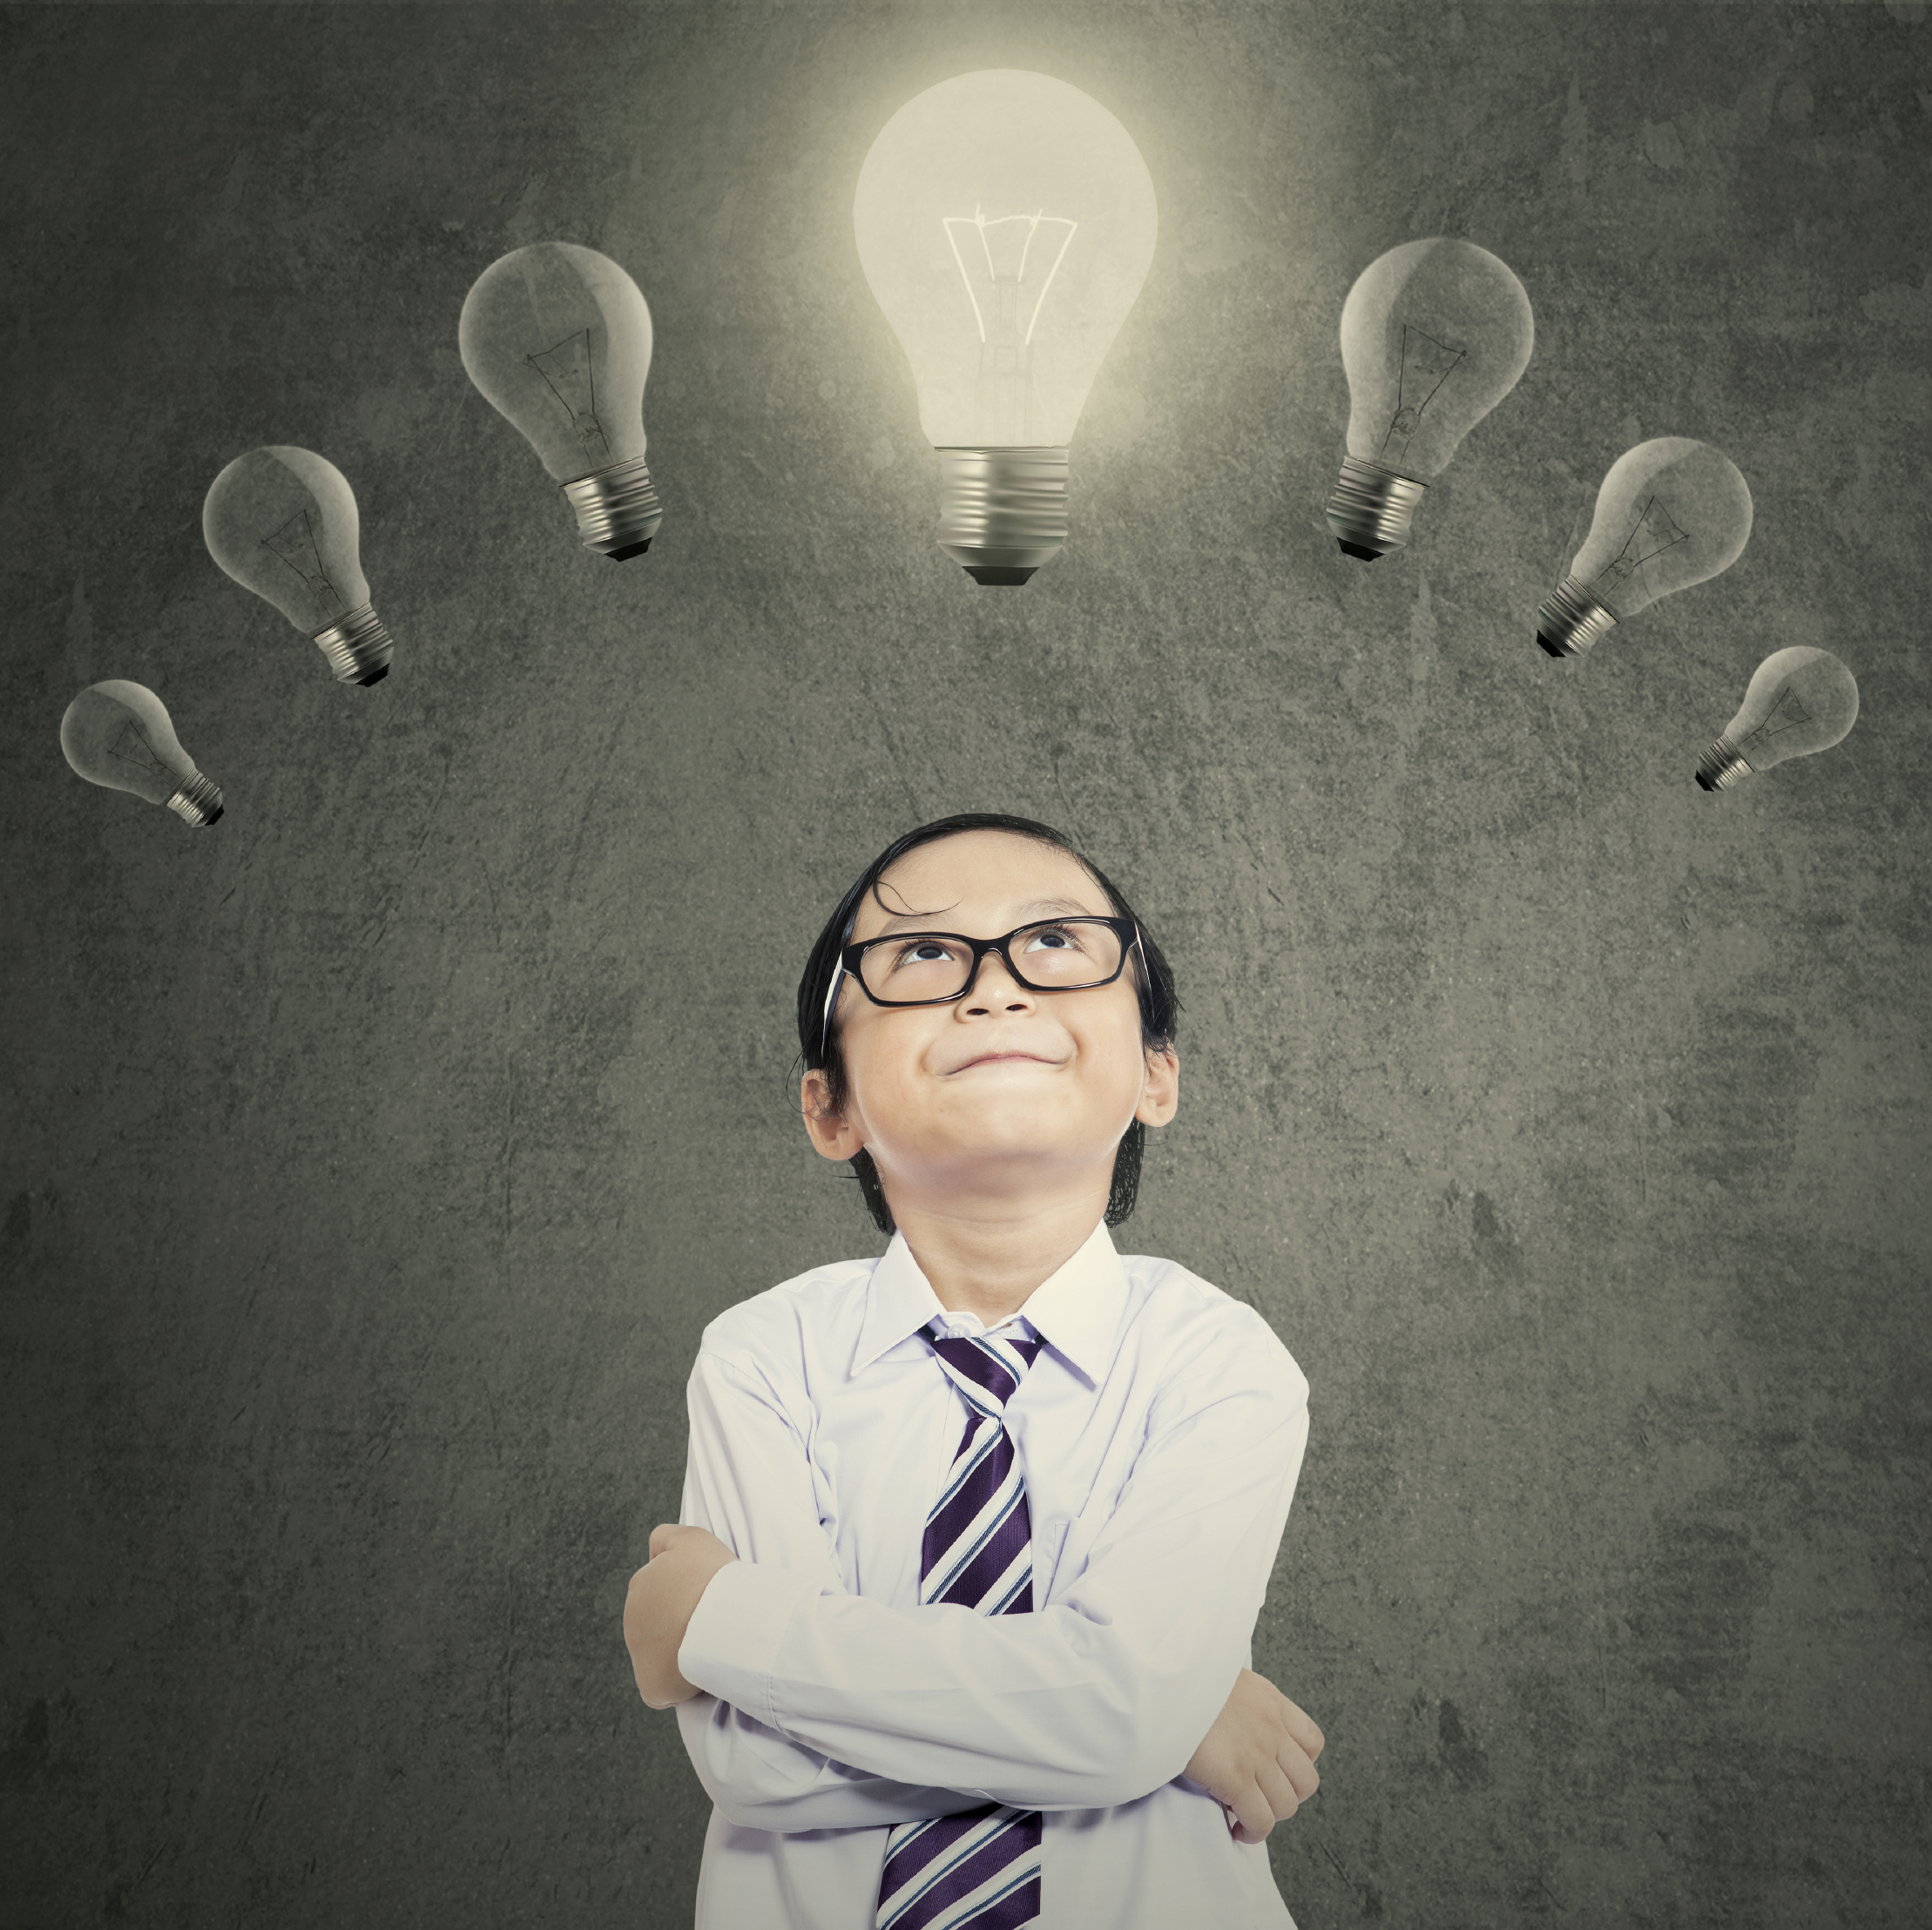 Cute little student looking at lightbulb over head, symbolizing smart student having idea